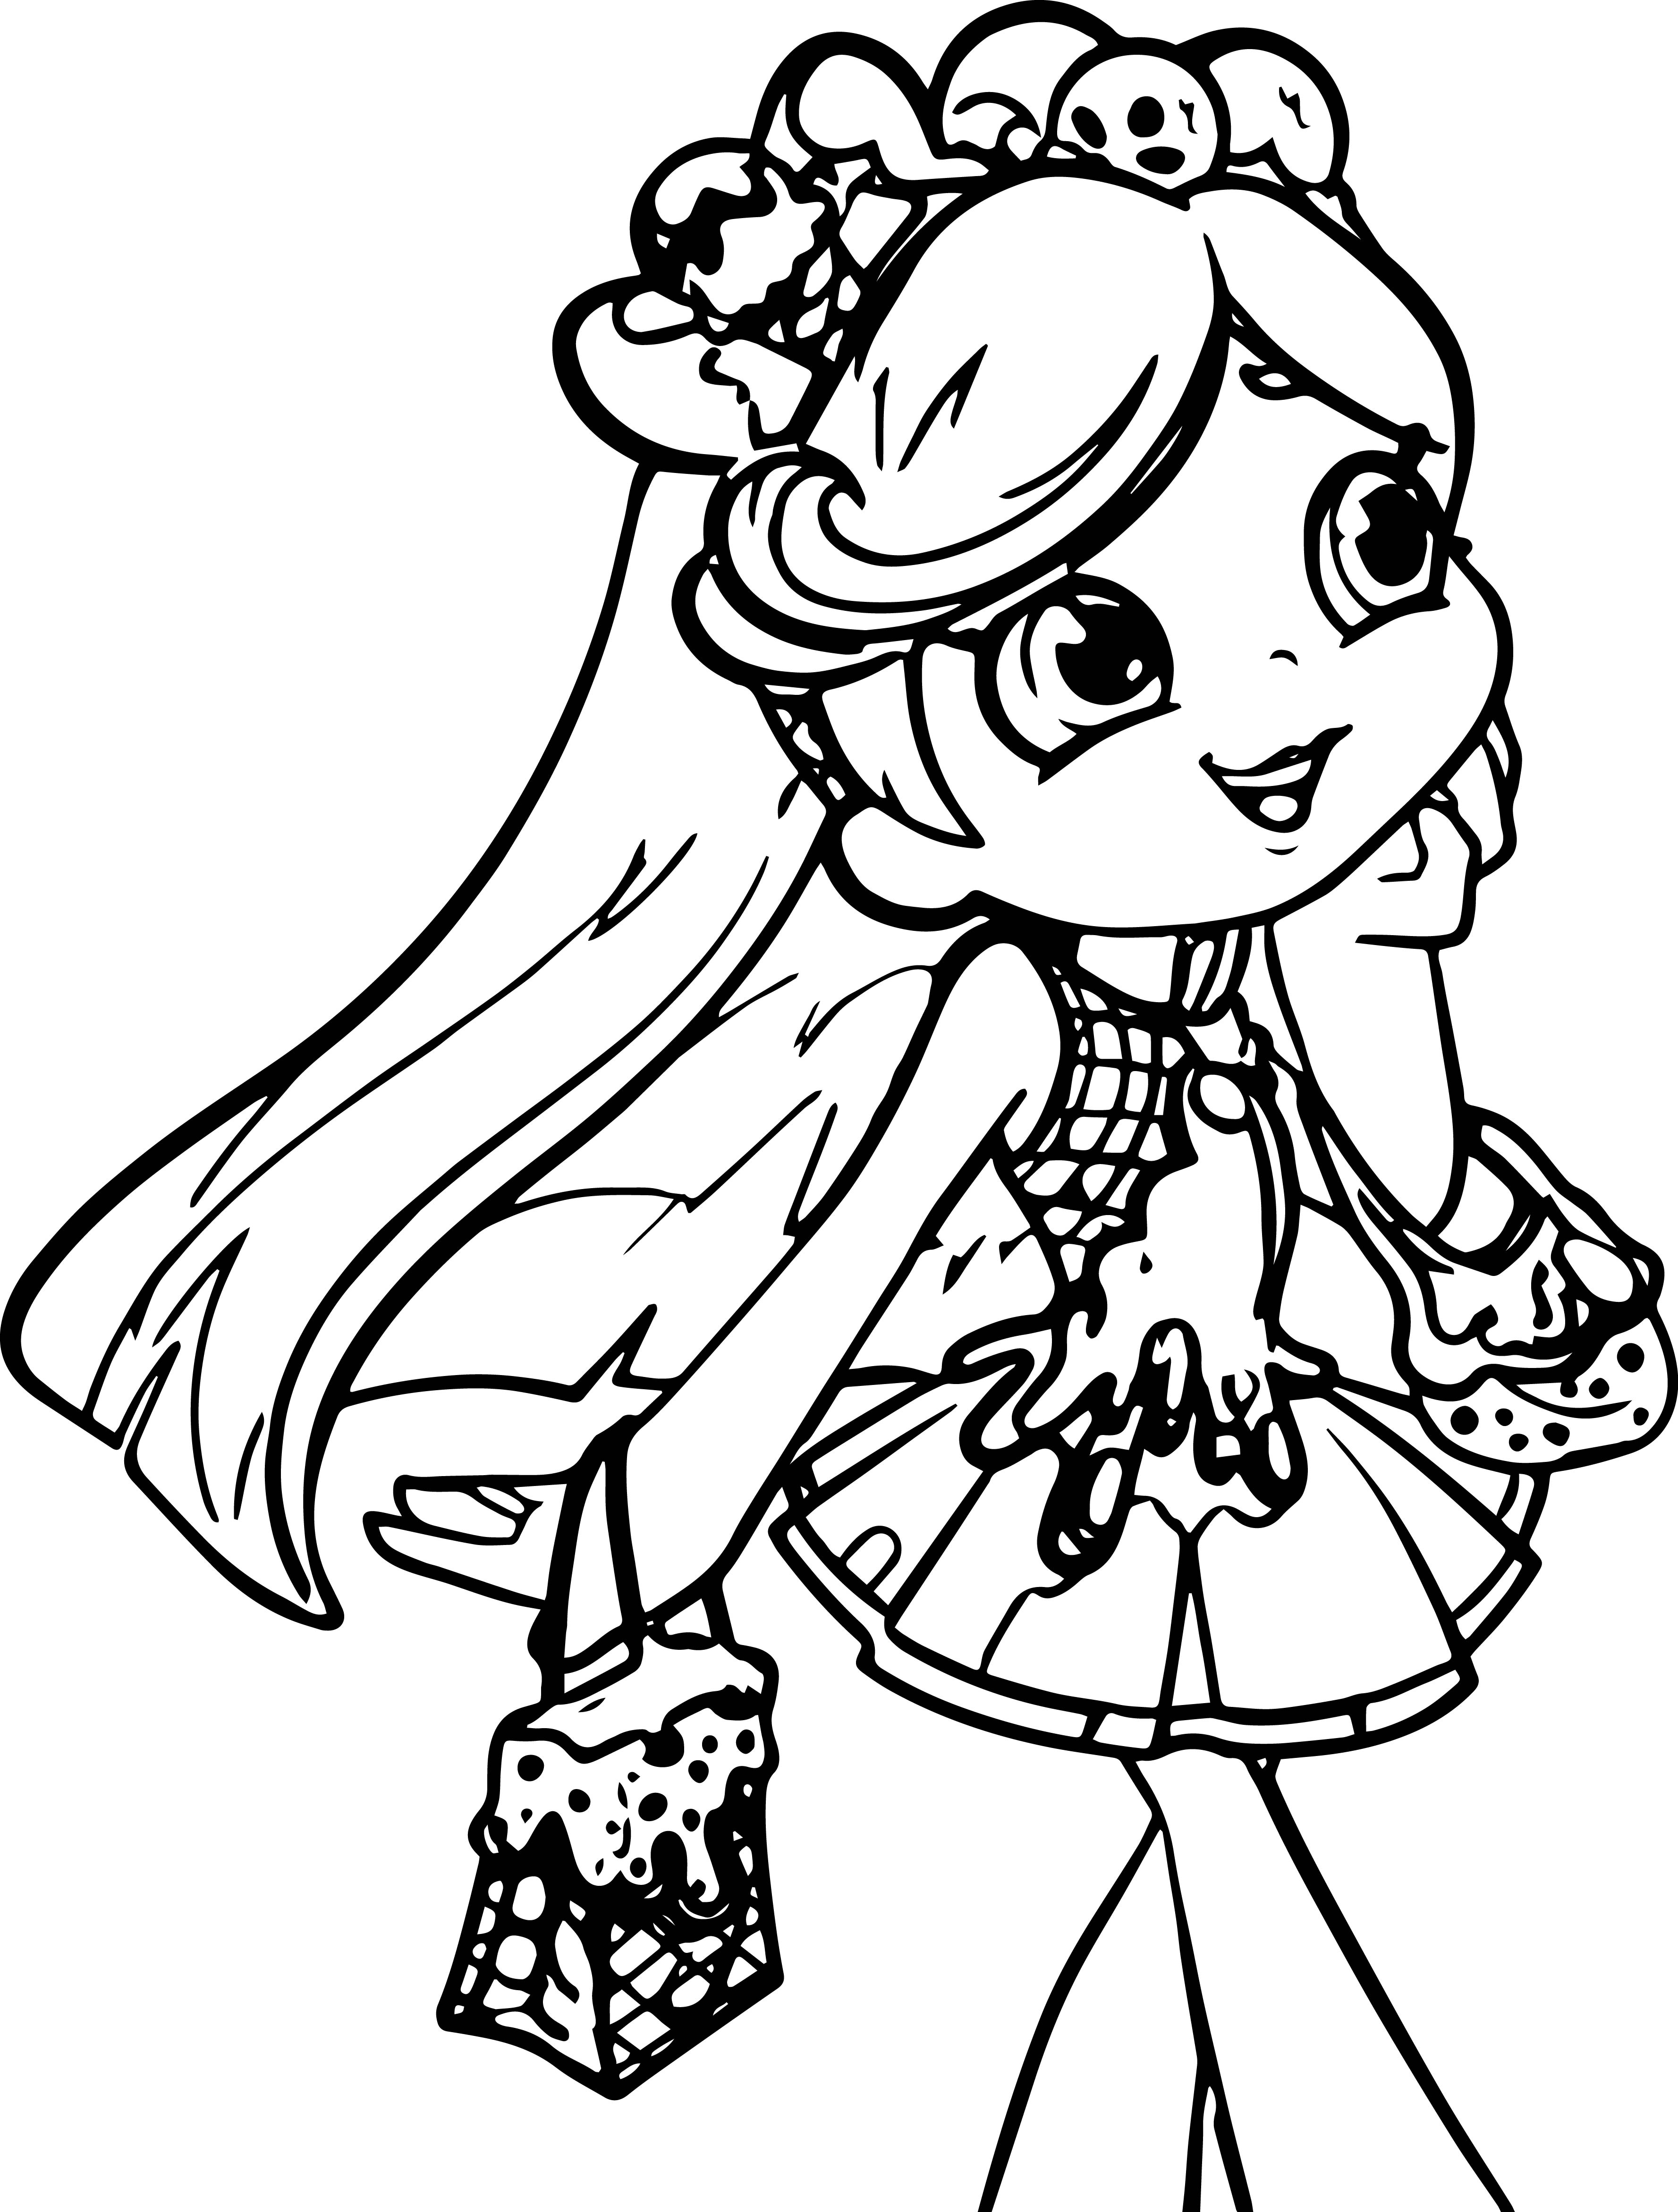 Shopkins Girl Coloring Page Wecoloringpage